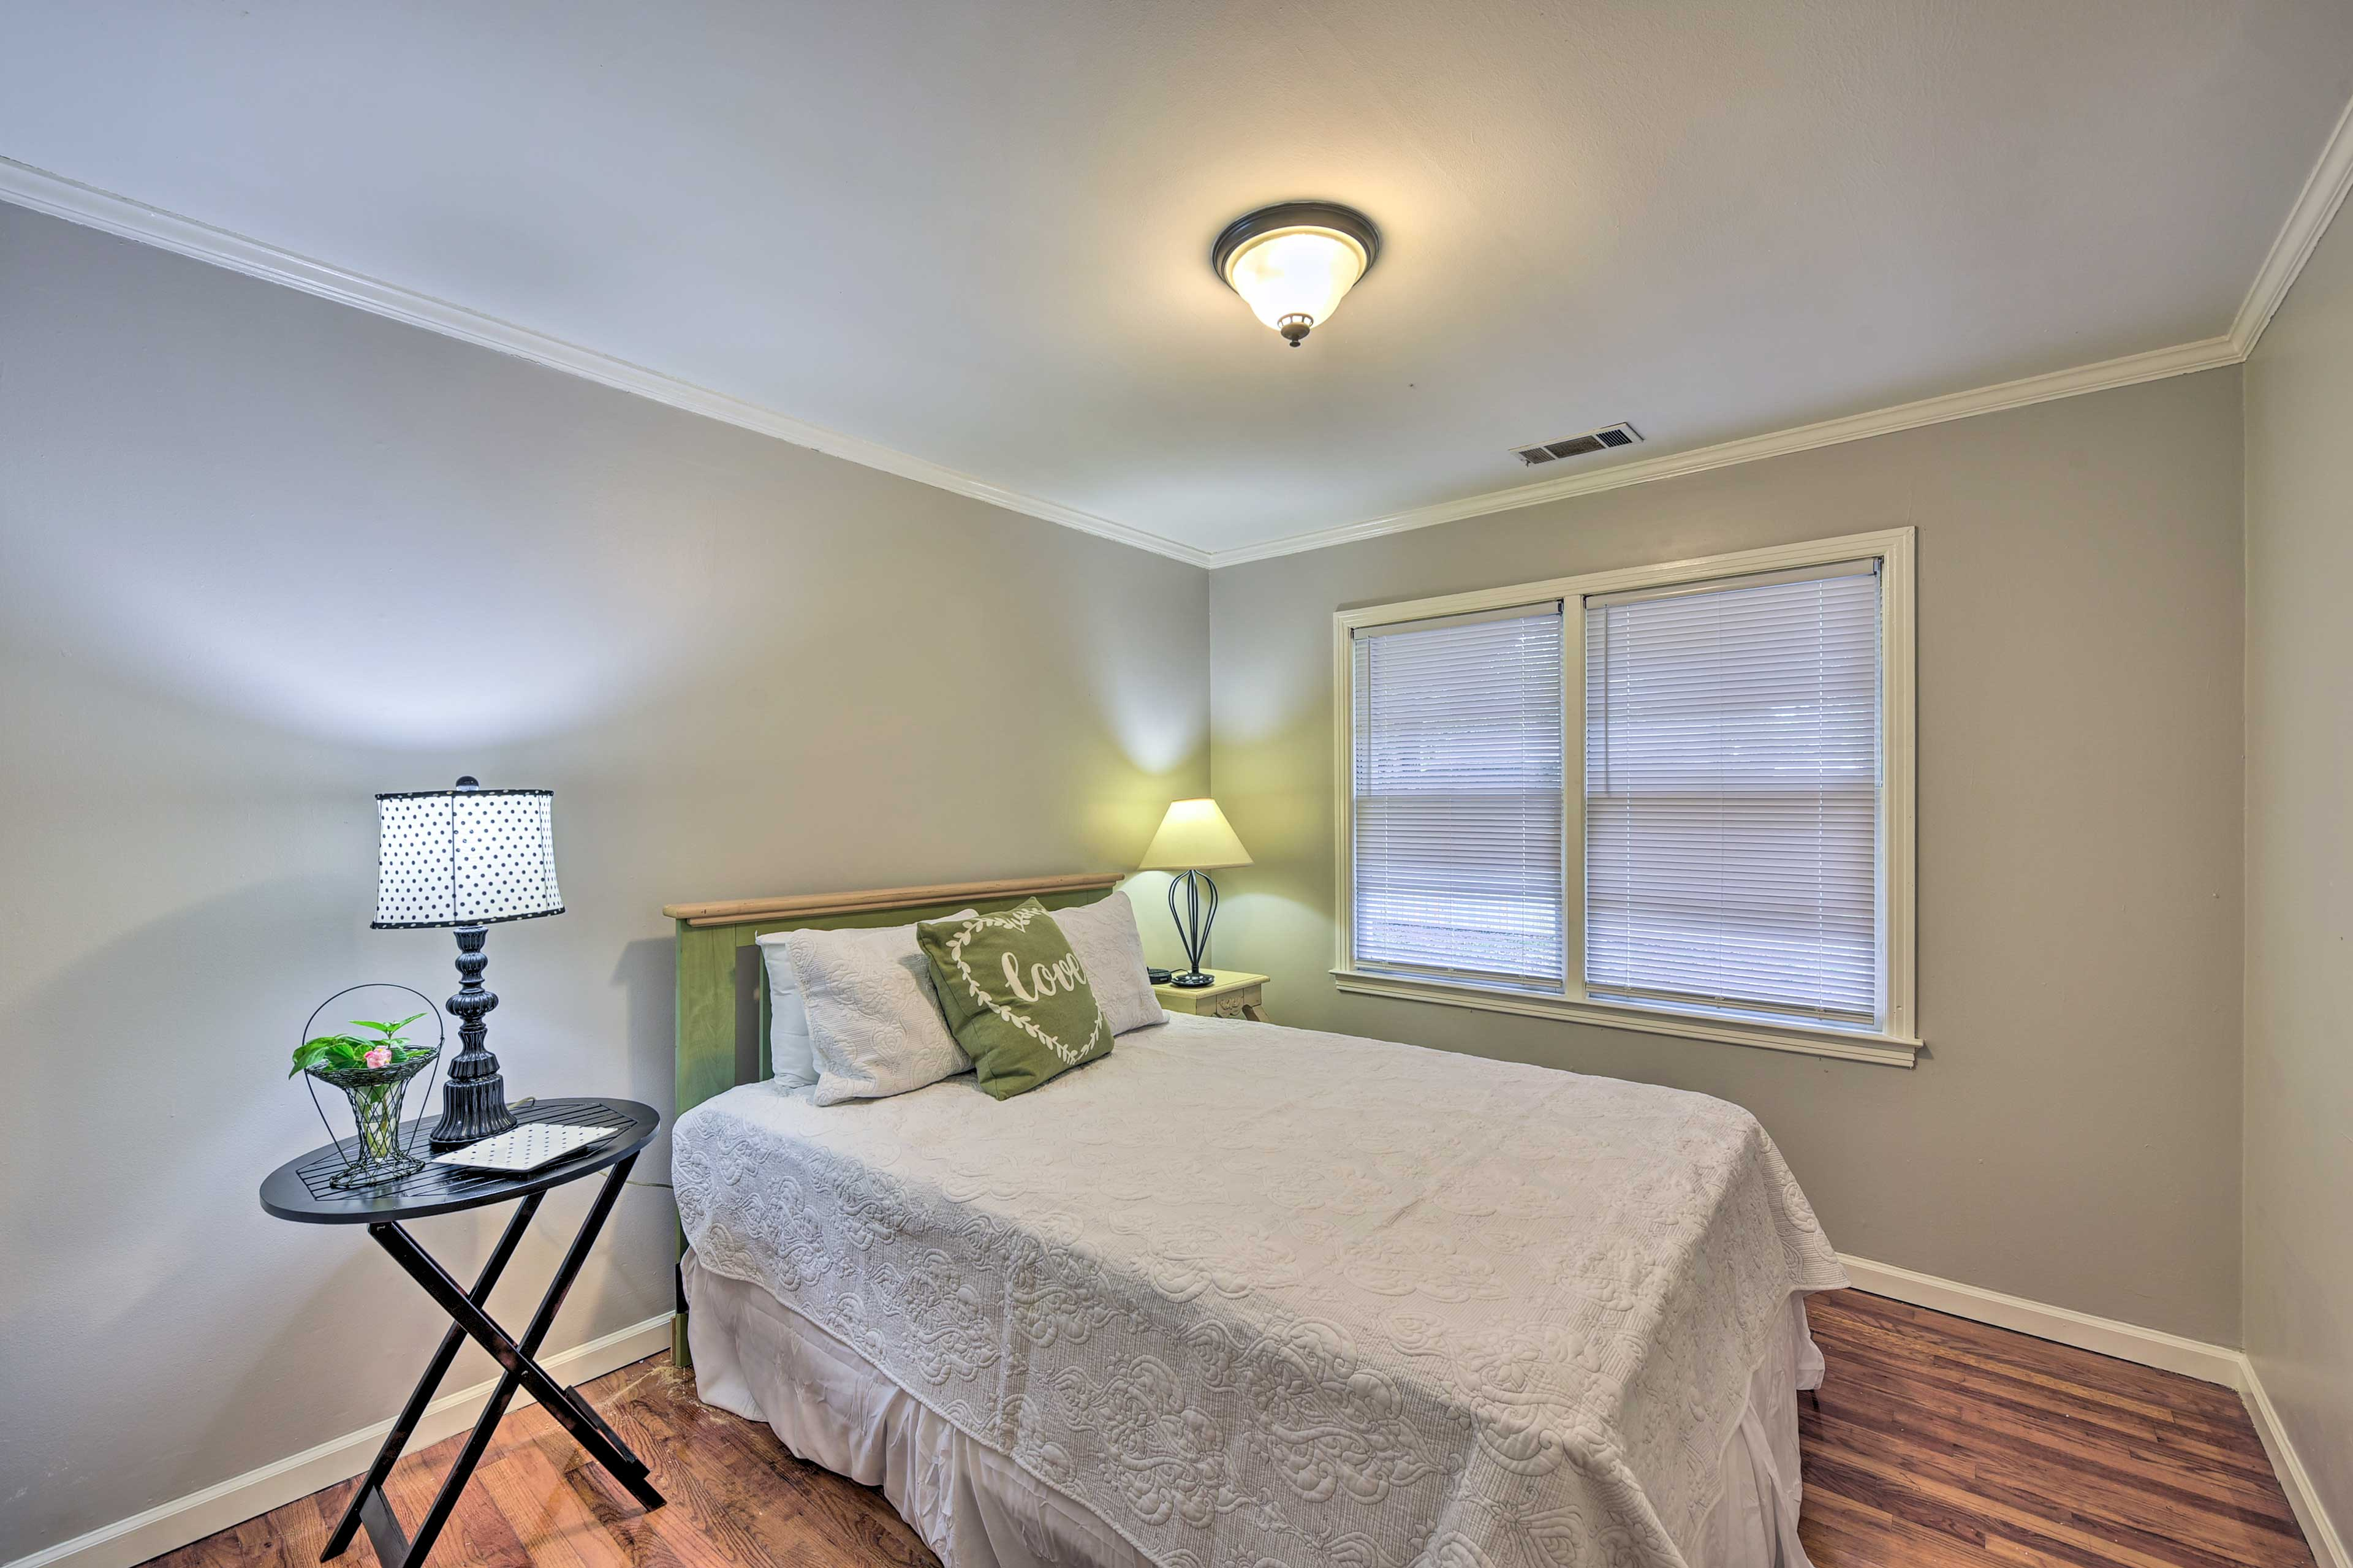 The 2nd bedroom features another queen bed.